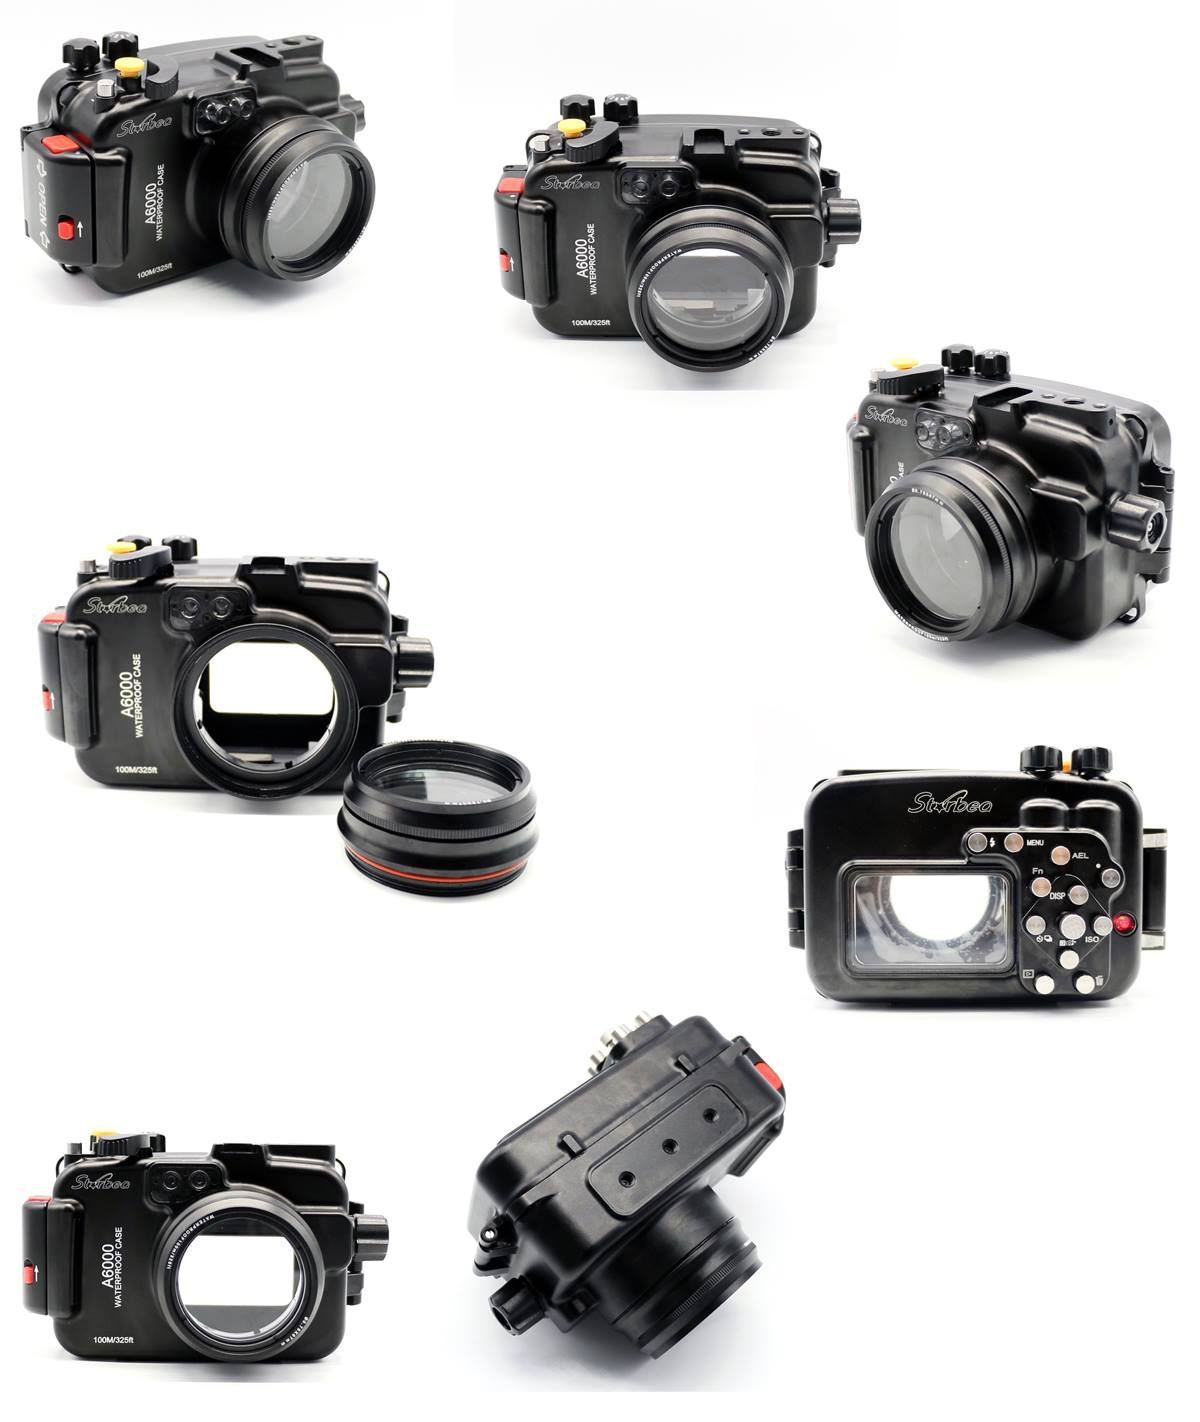 Meikon Starbea water housing for the Sony a6000